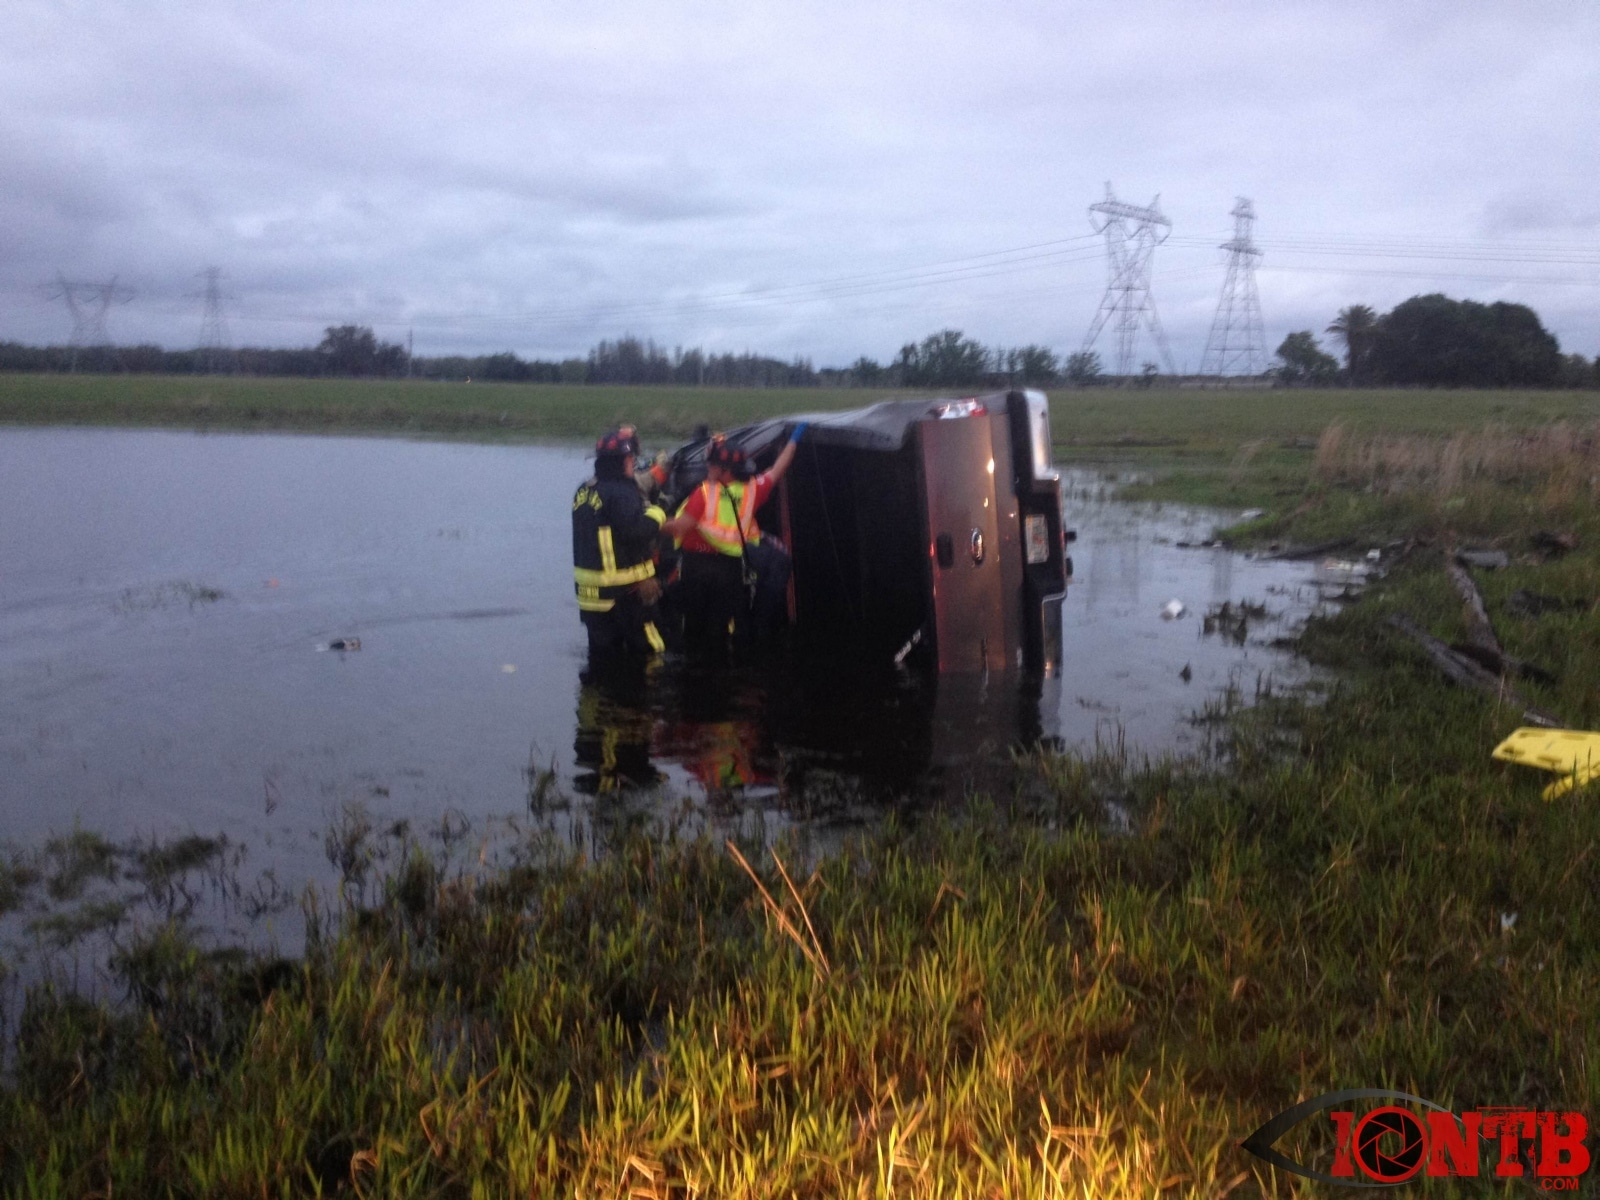 Driver In Partially Submerged Vehicle Rescued by Good Samaritan